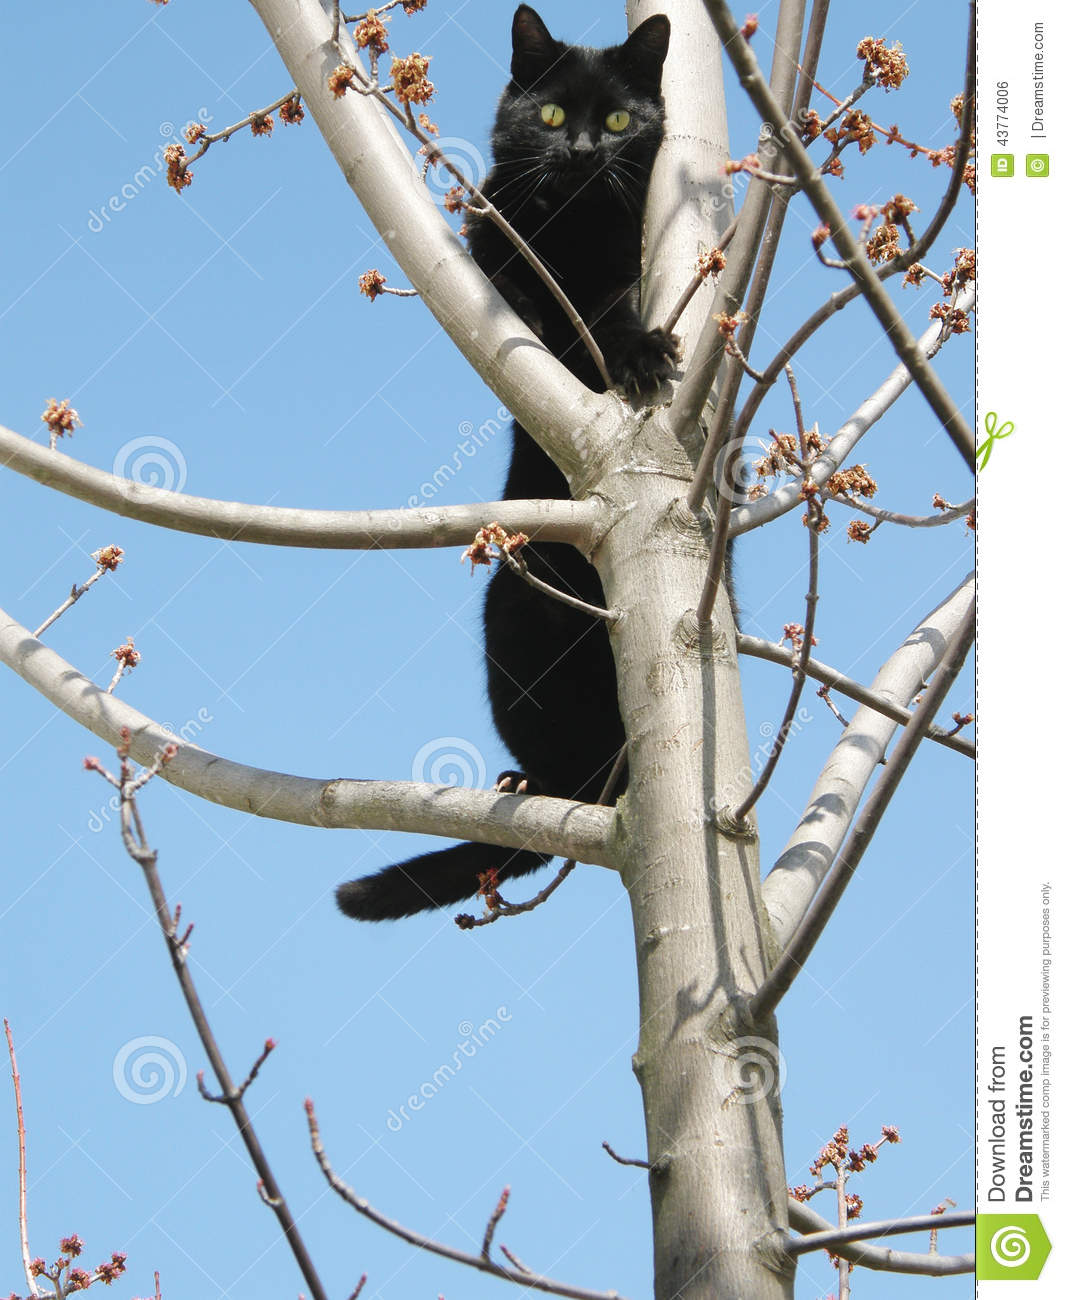 black cat in tree stock photo image 43774006. Black Bedroom Furniture Sets. Home Design Ideas